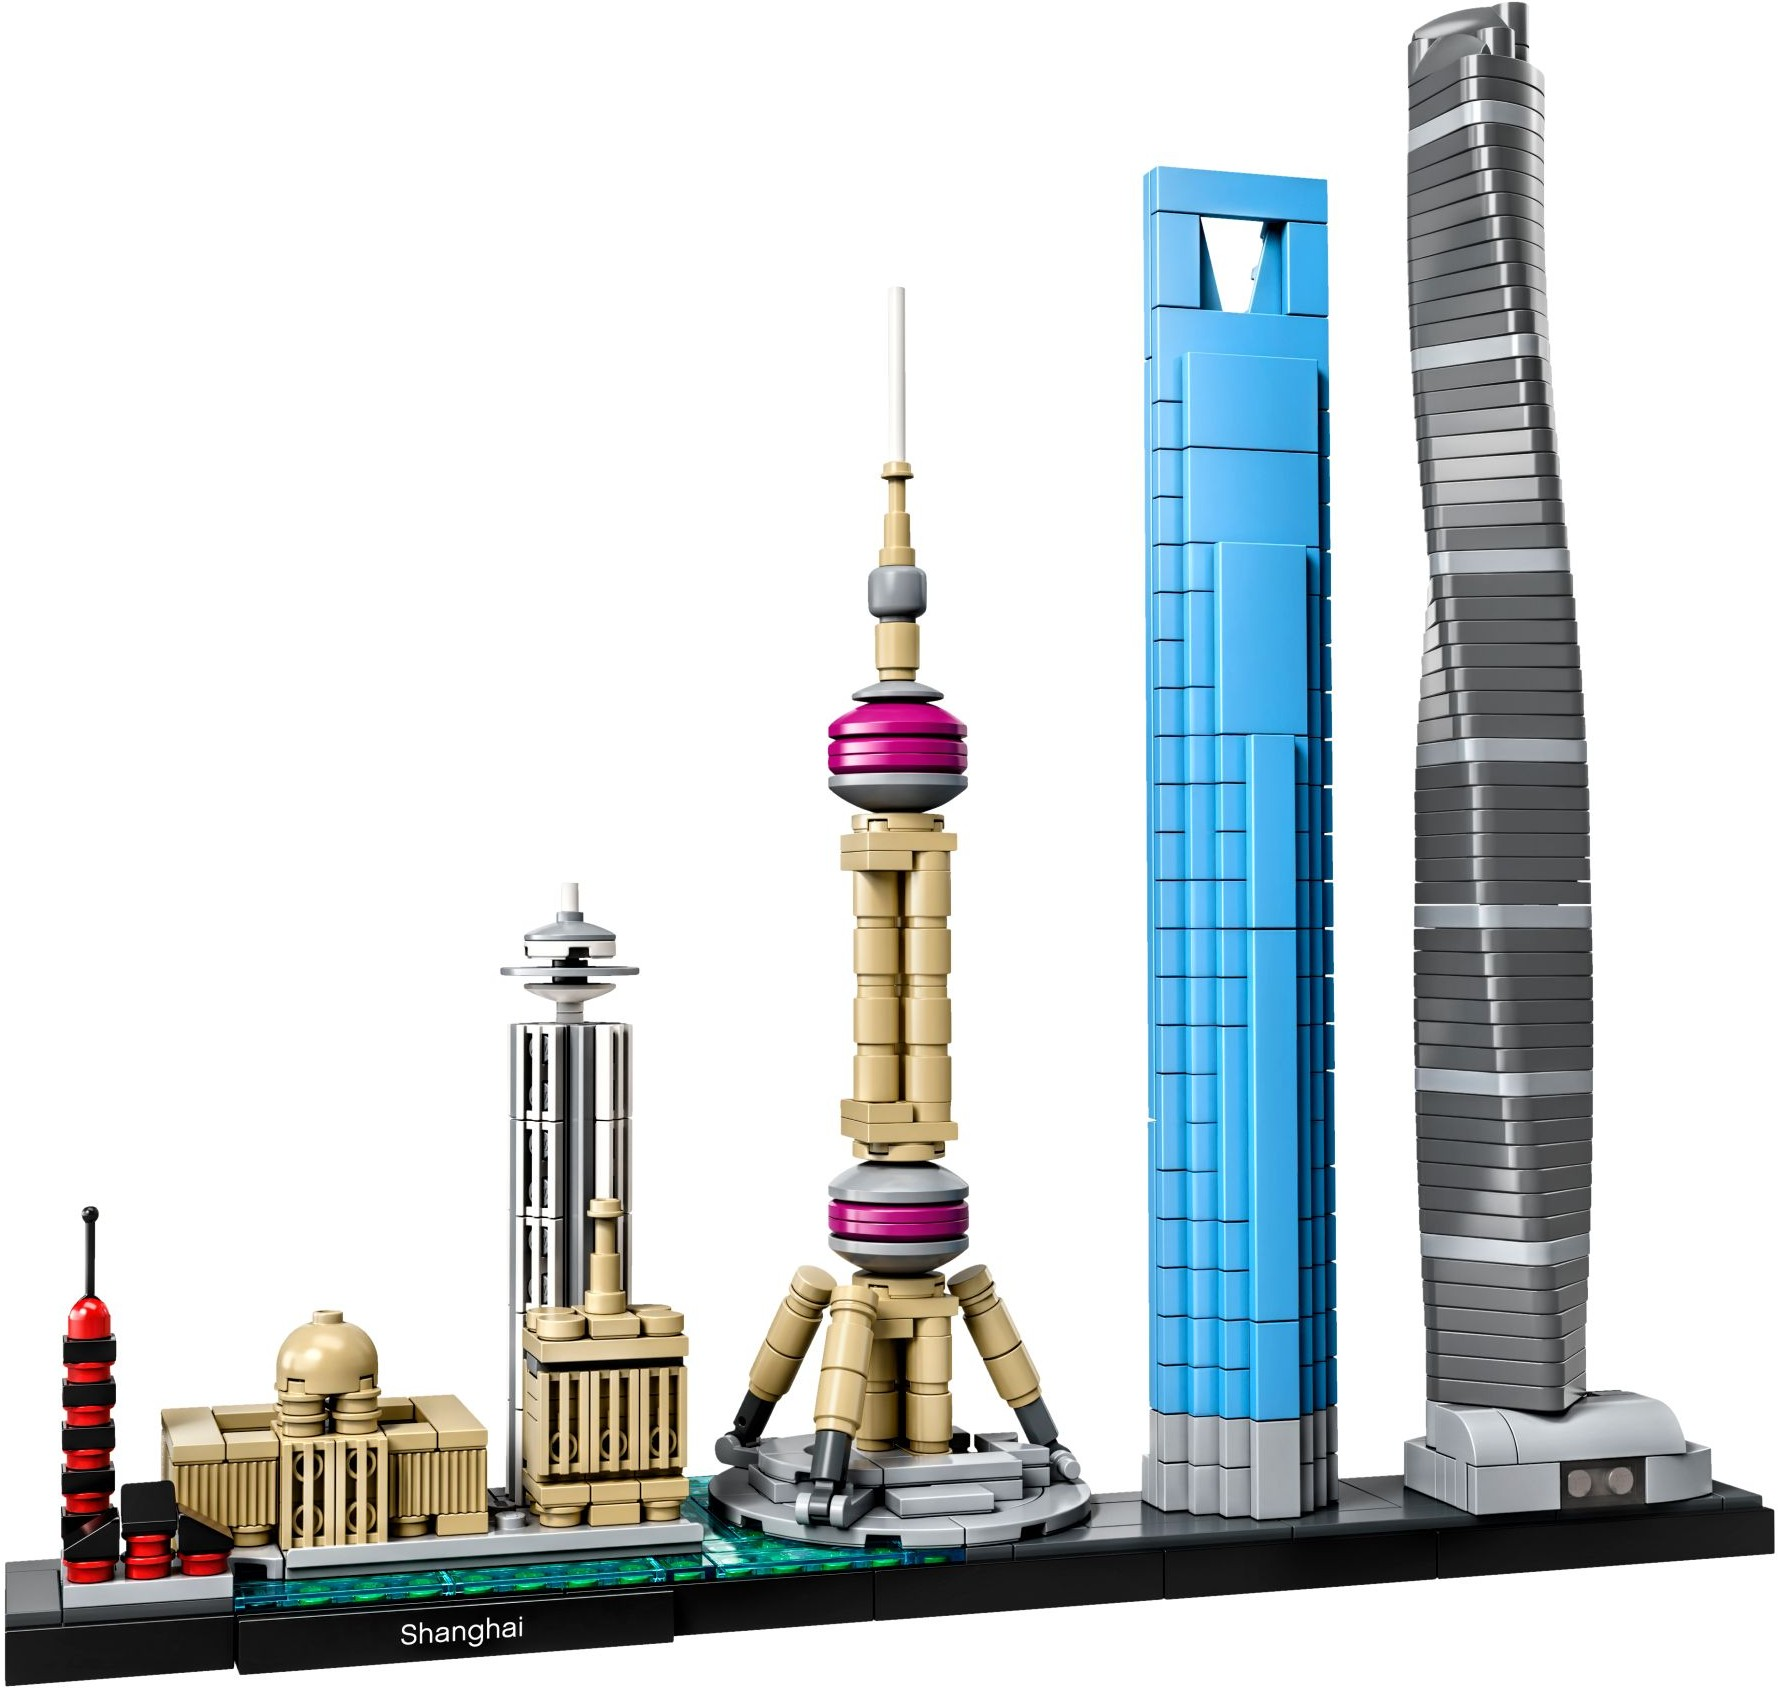 architecture shanghai lego sets vegas brickset skylines guide